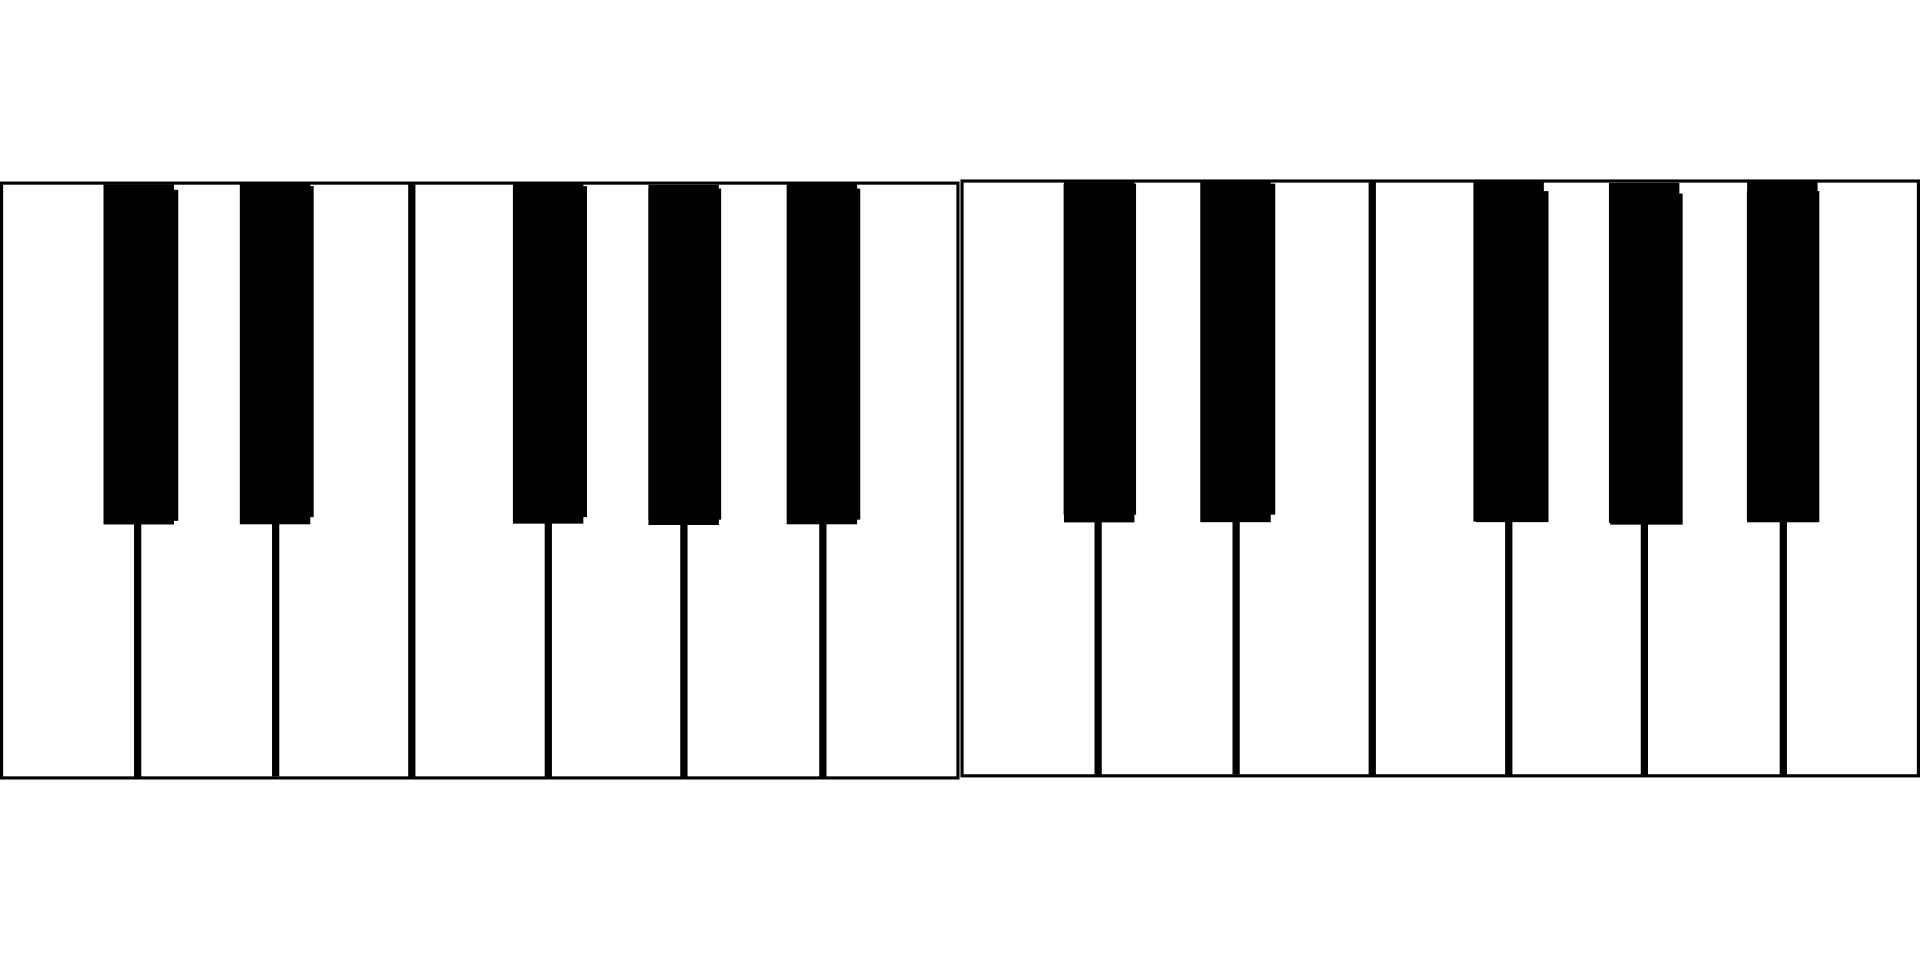 Piano Keyboard Drawing Free Image Or know where i can get one? https pixy org licence php